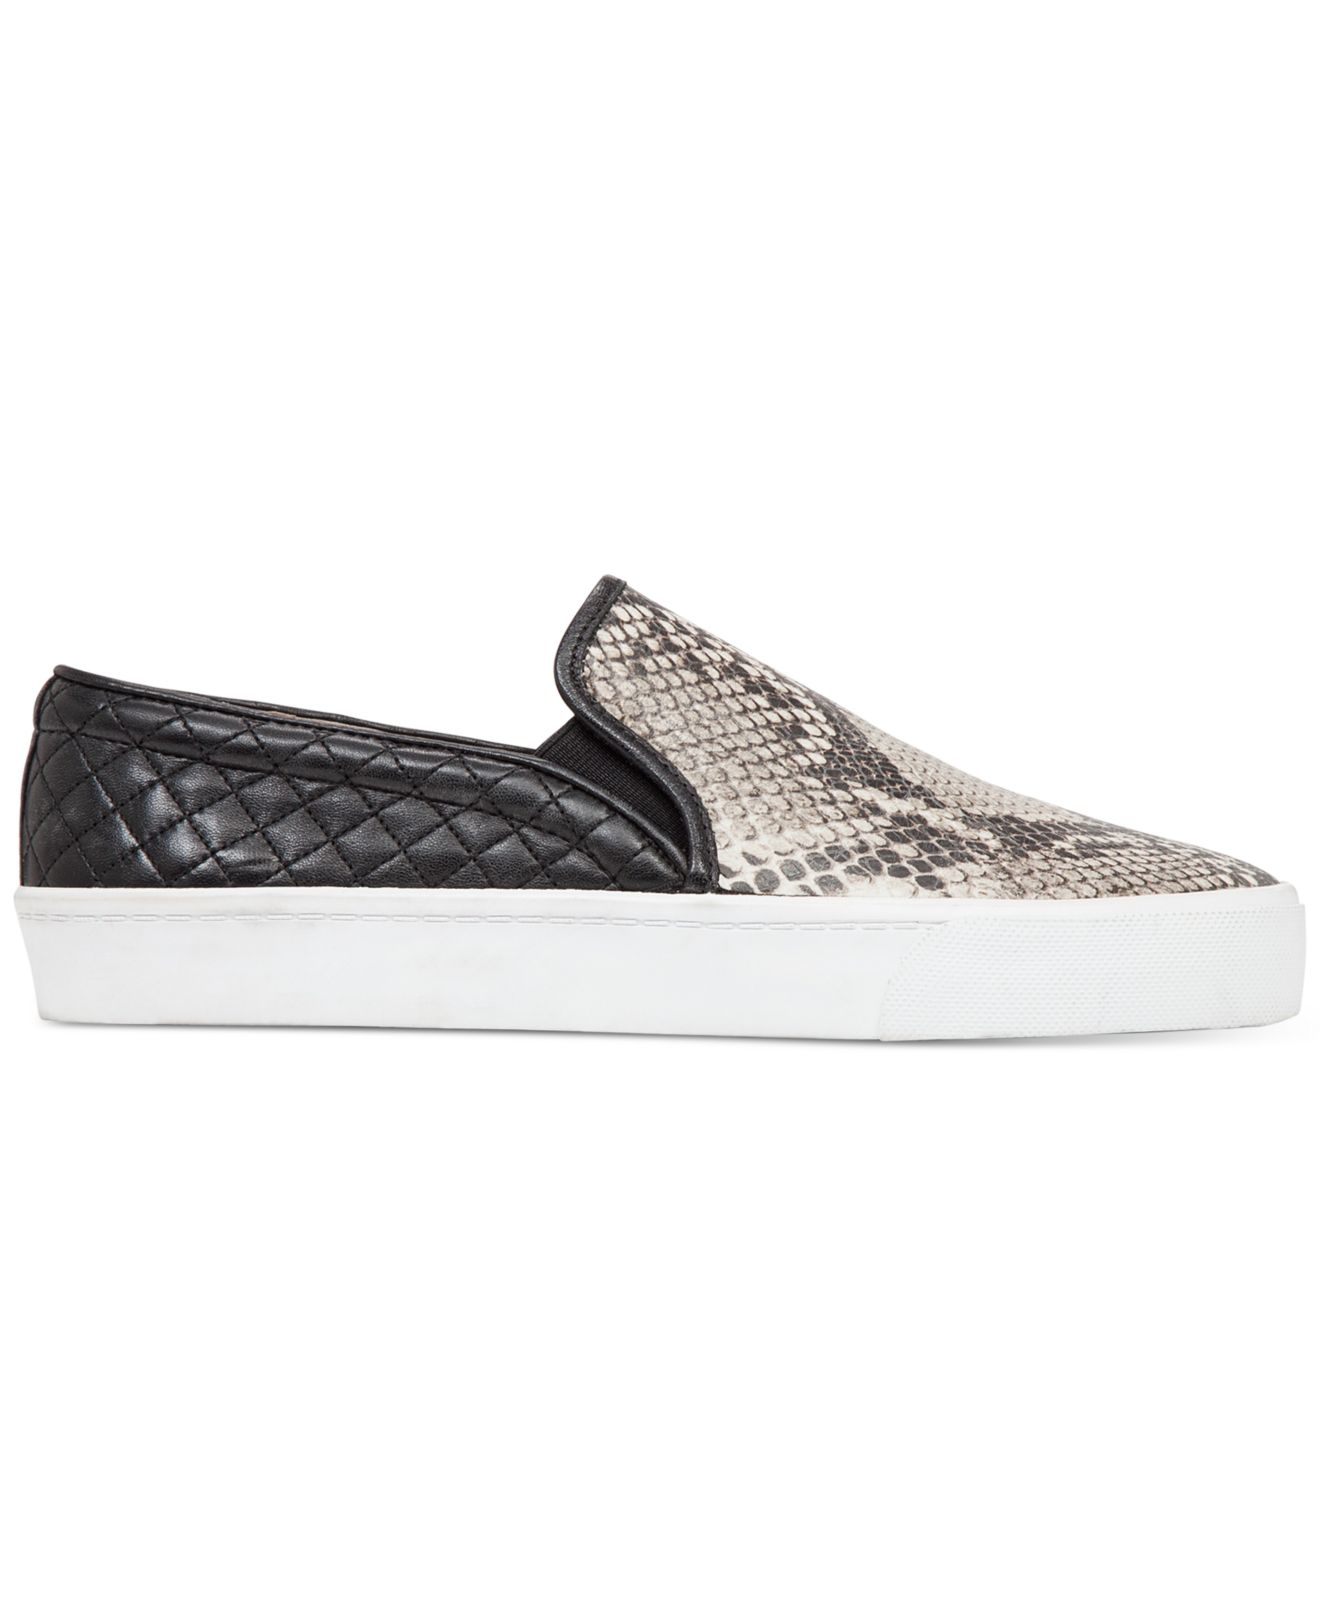 a6b86798664bf7 Lyst - Vince Camuto Banner Sneakers